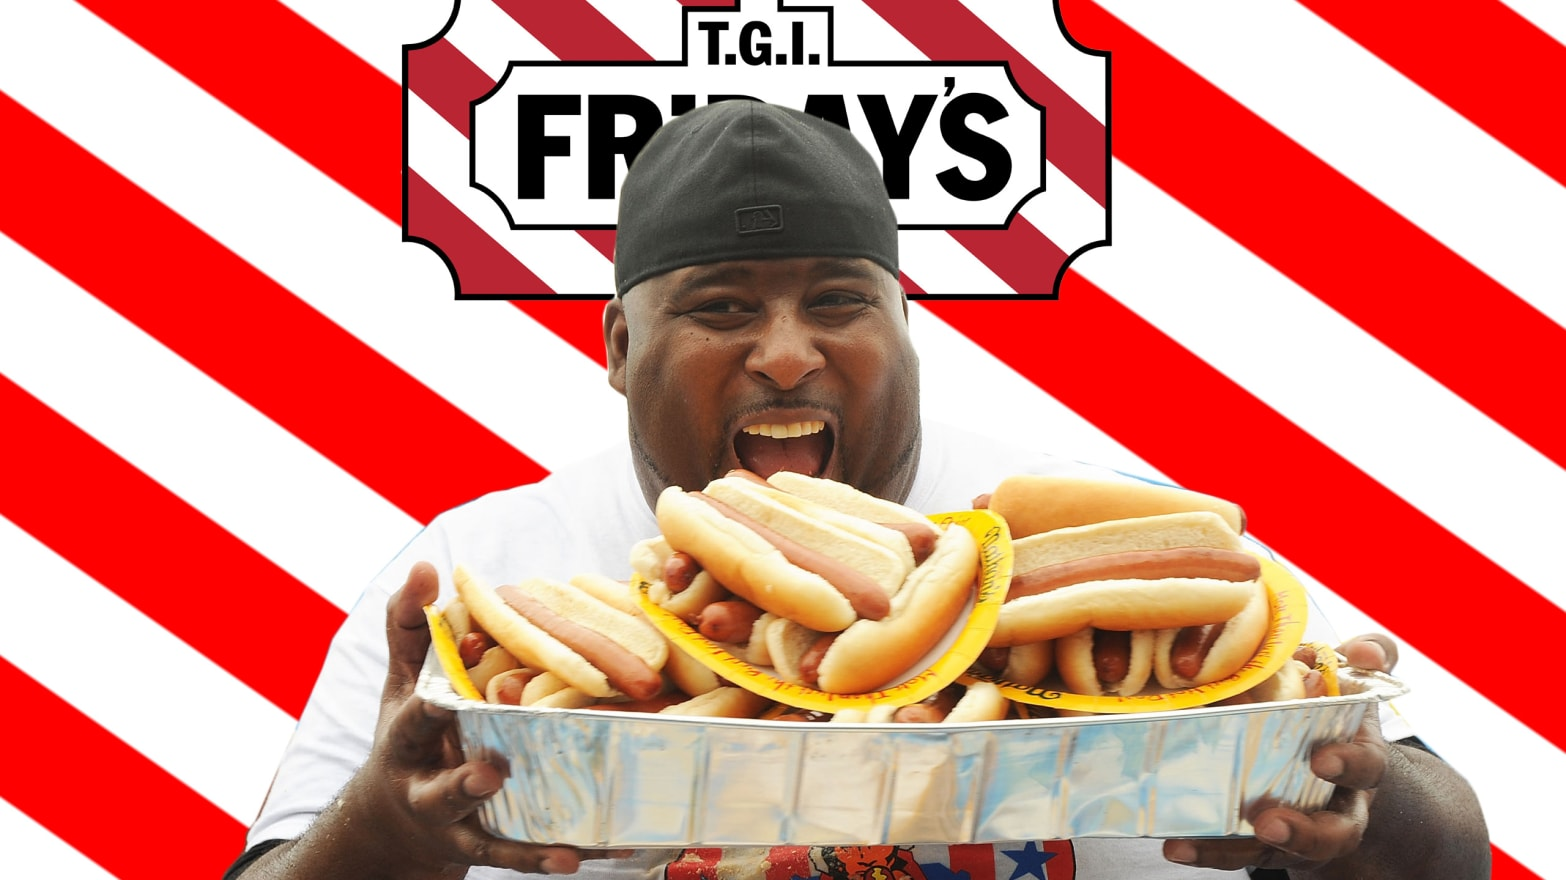 Video: We Took a Competitive Eater to TGI Fridays for Endless